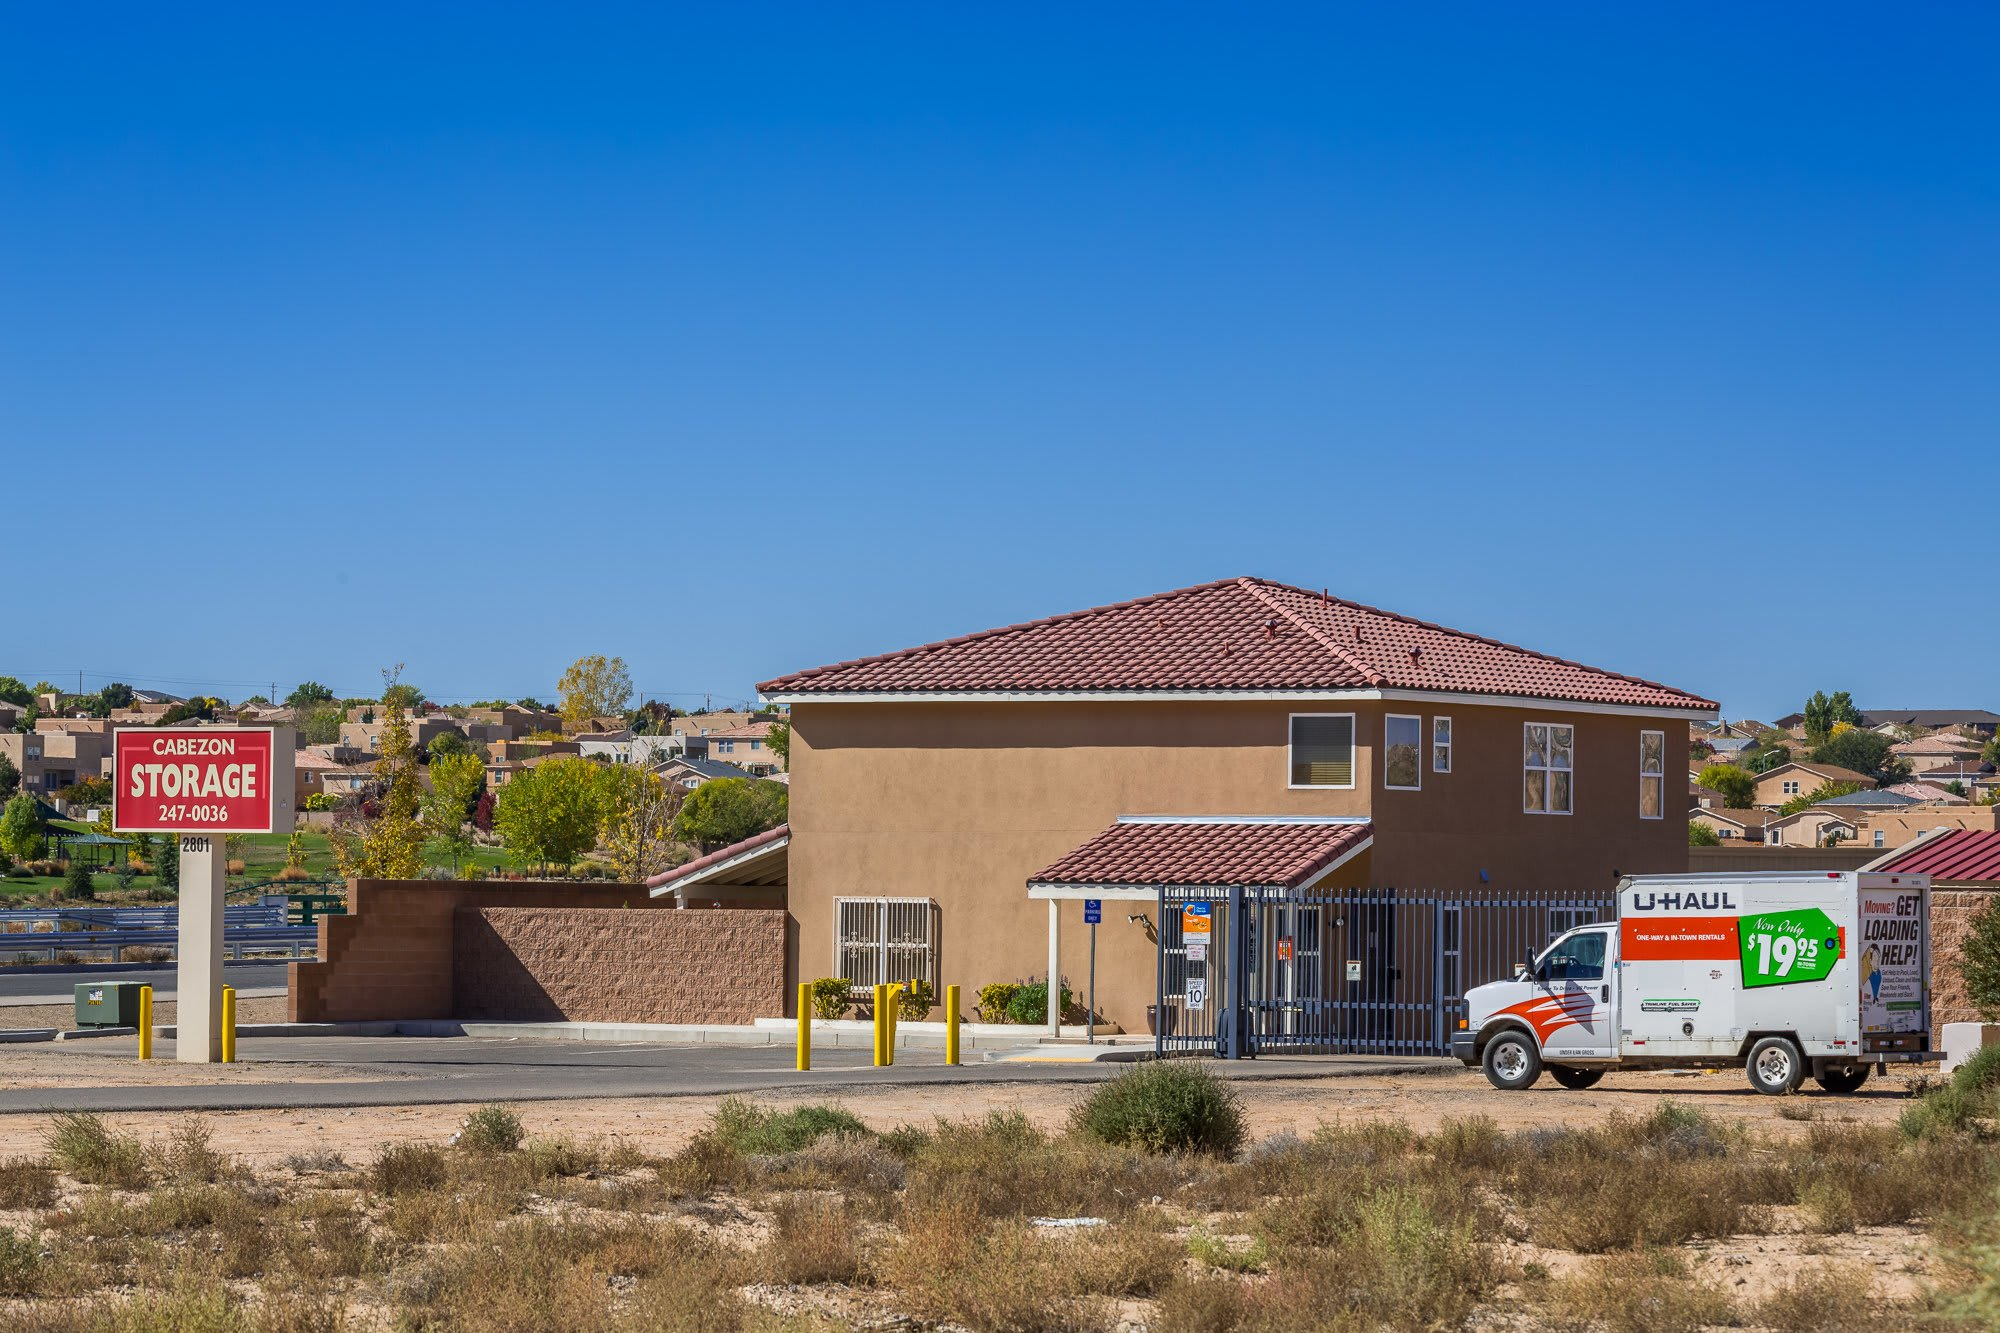 Self storage for all of your needs in Rio Rancho, NM